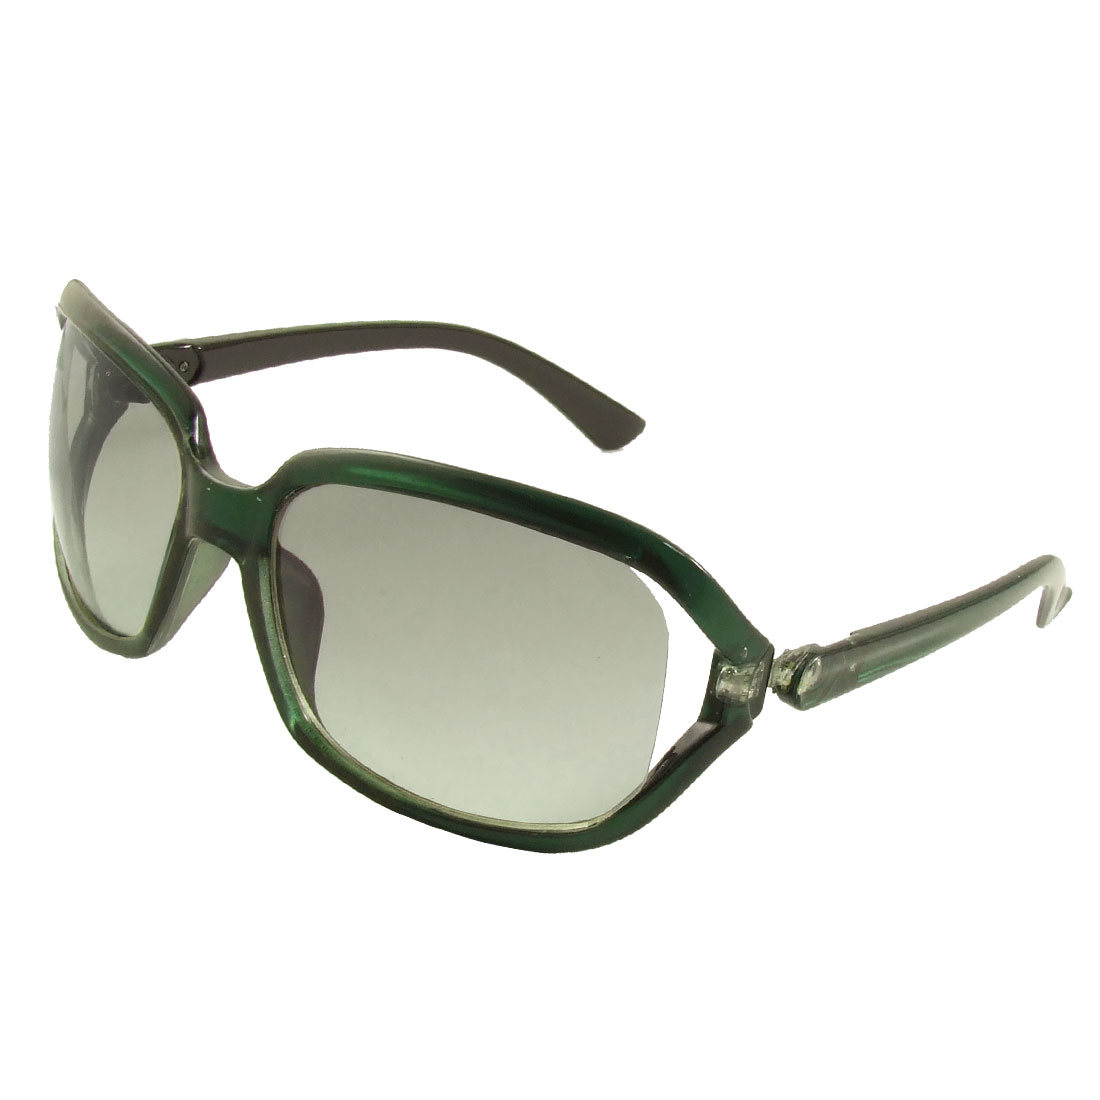 Plastic Arms Clear Green Black Frame Colored Lens Sunglasses for Men